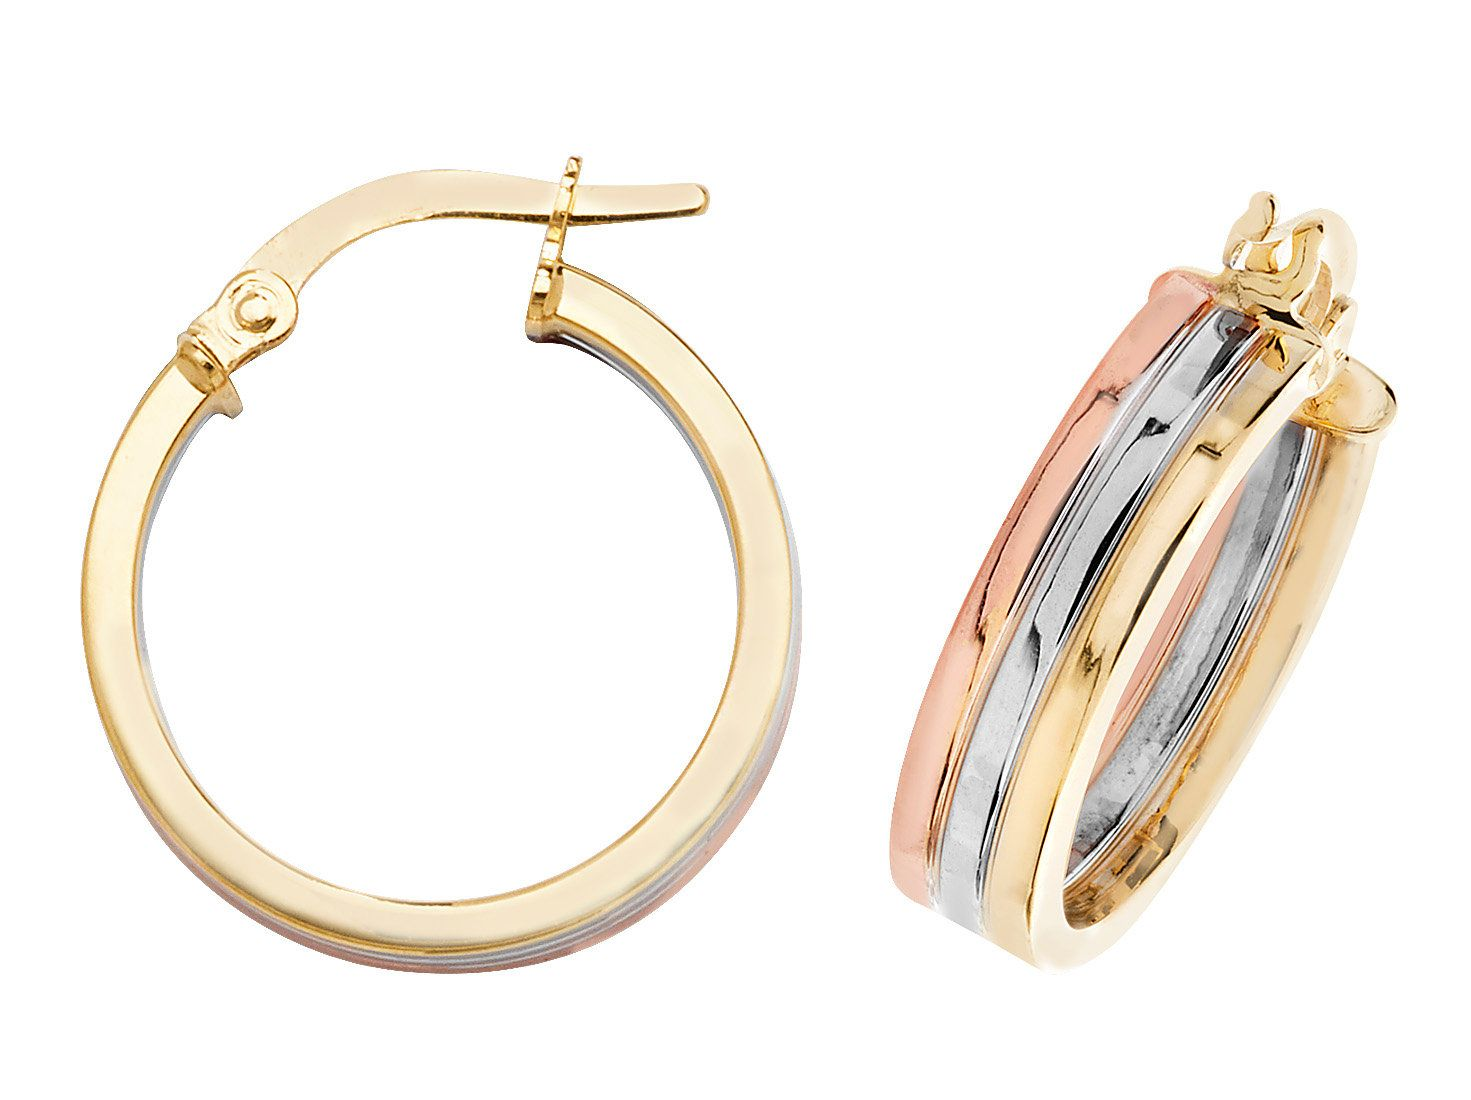 d766d581a 9ct Tri Colour Yellow Rose & White Gold Flat Hoop Earrings 15mm 20mm ...